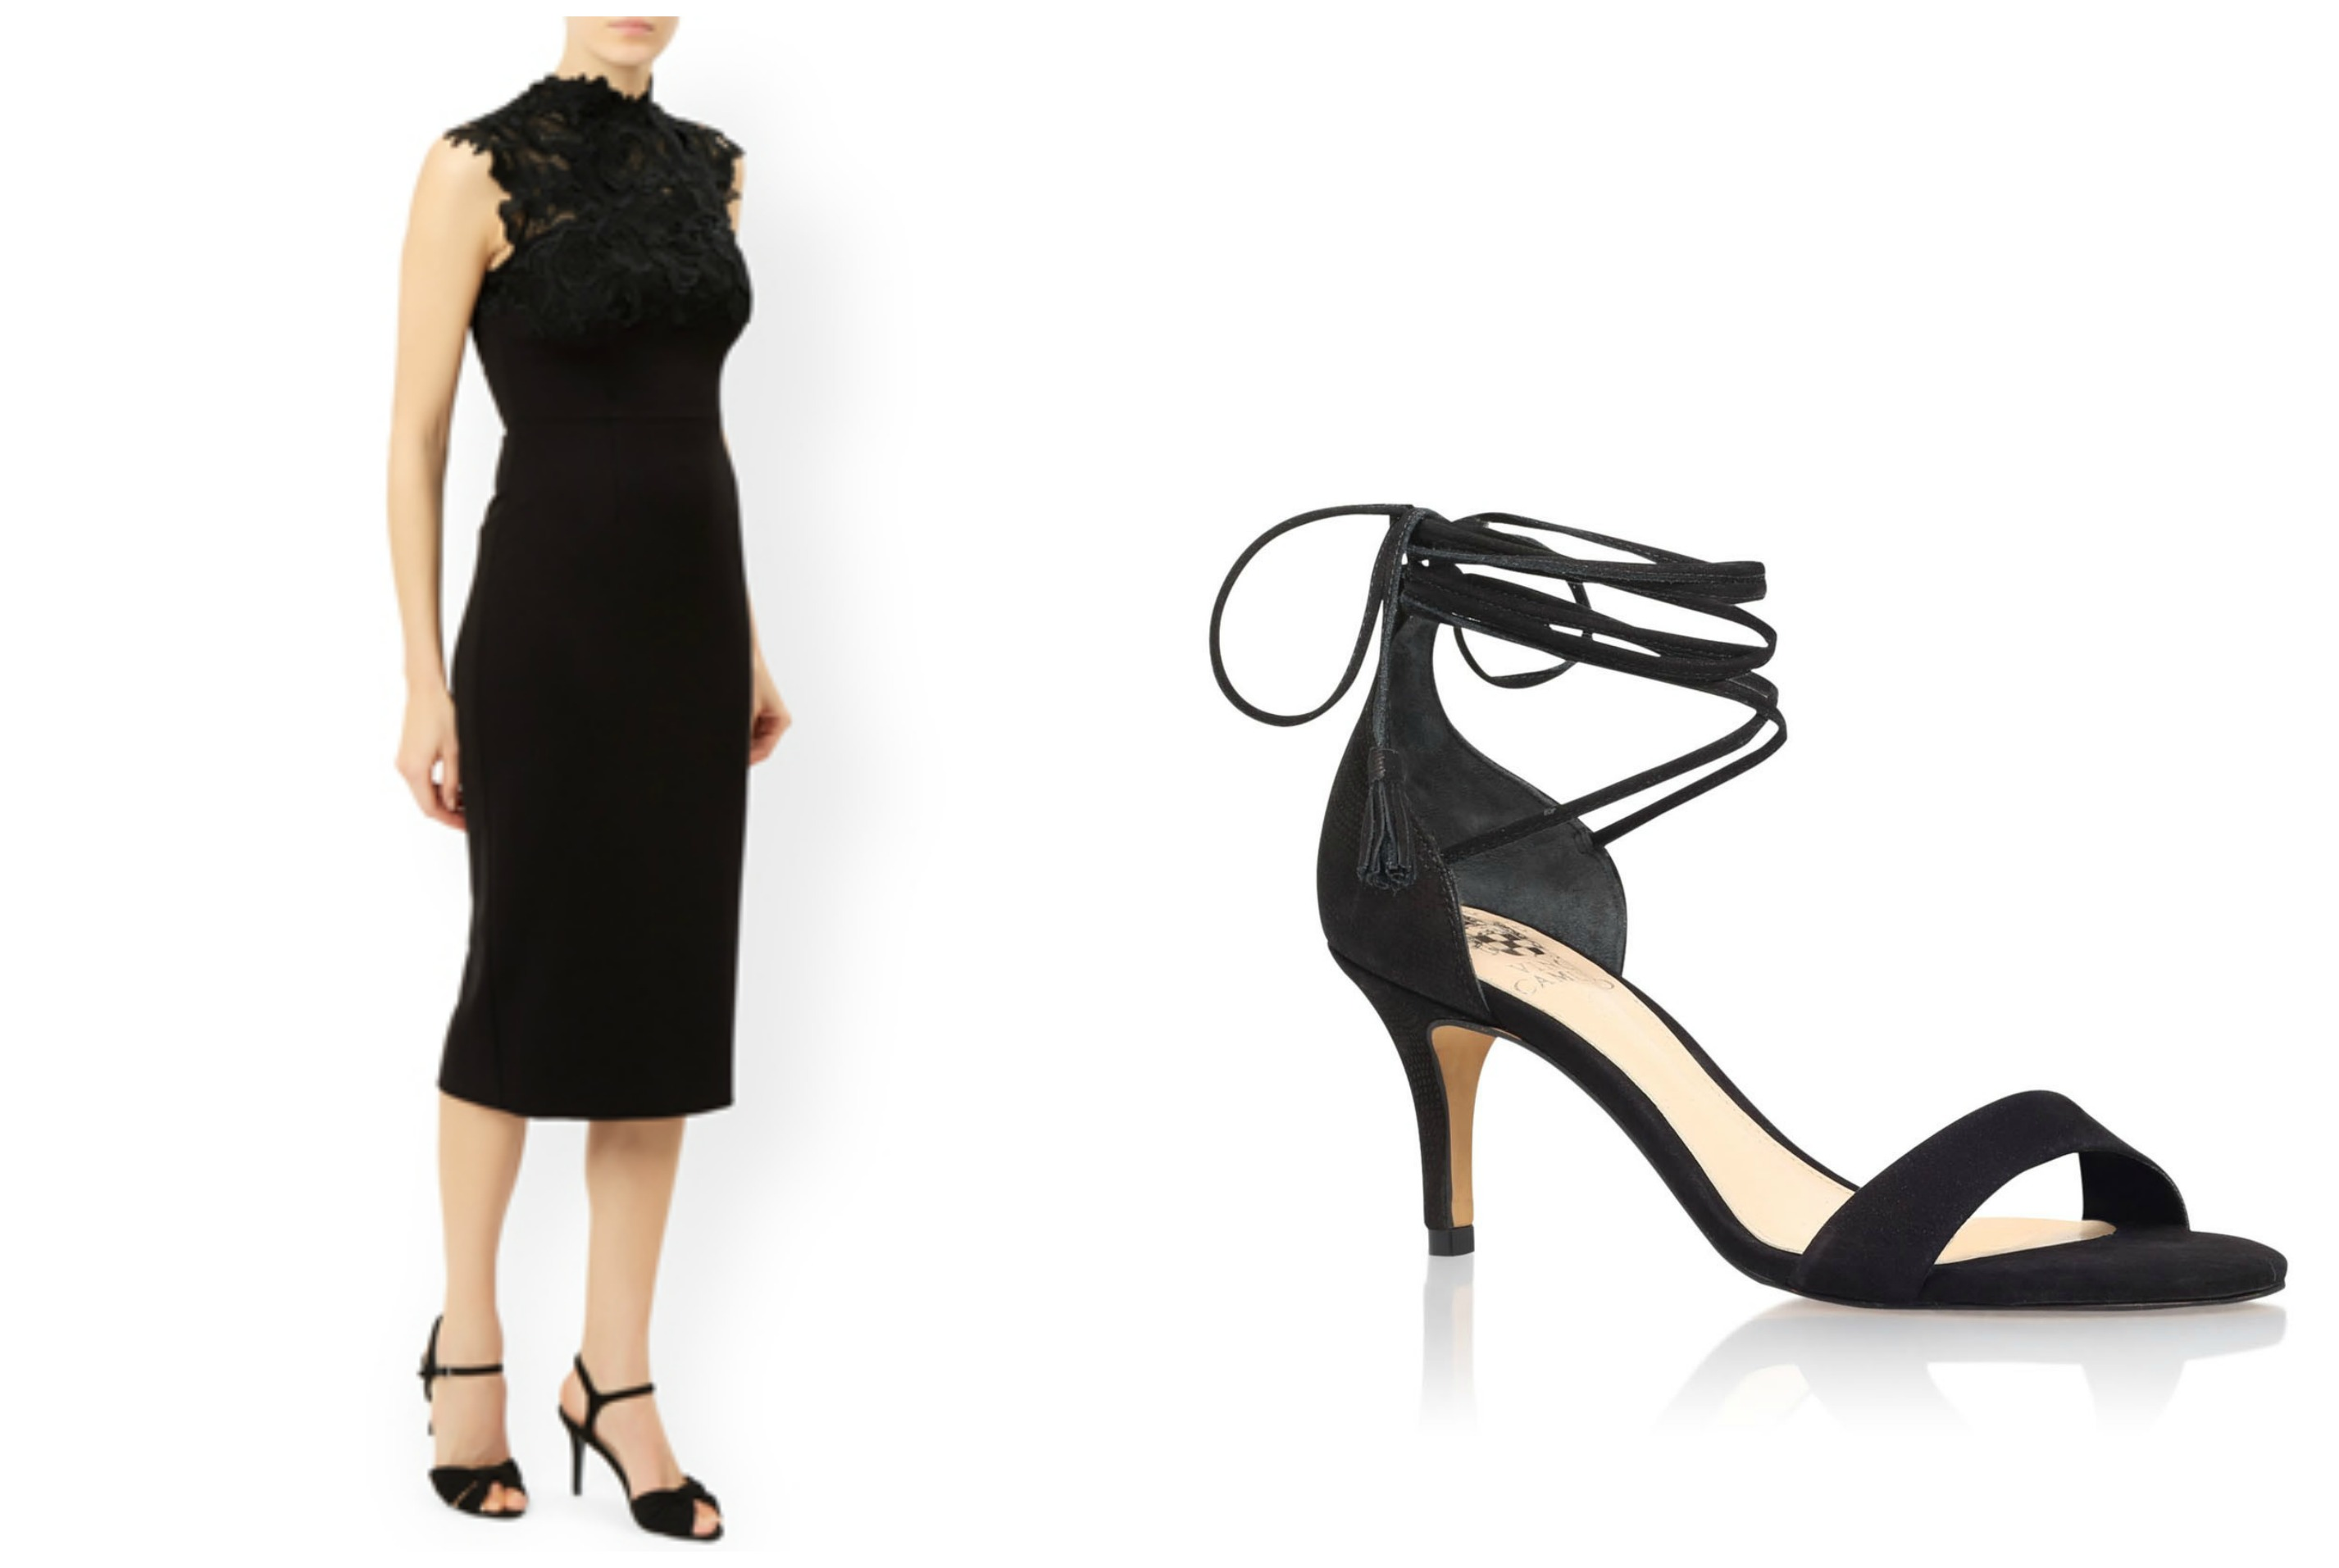 Monsoon cocktail dress and Kathin heels suitable for a charity ball